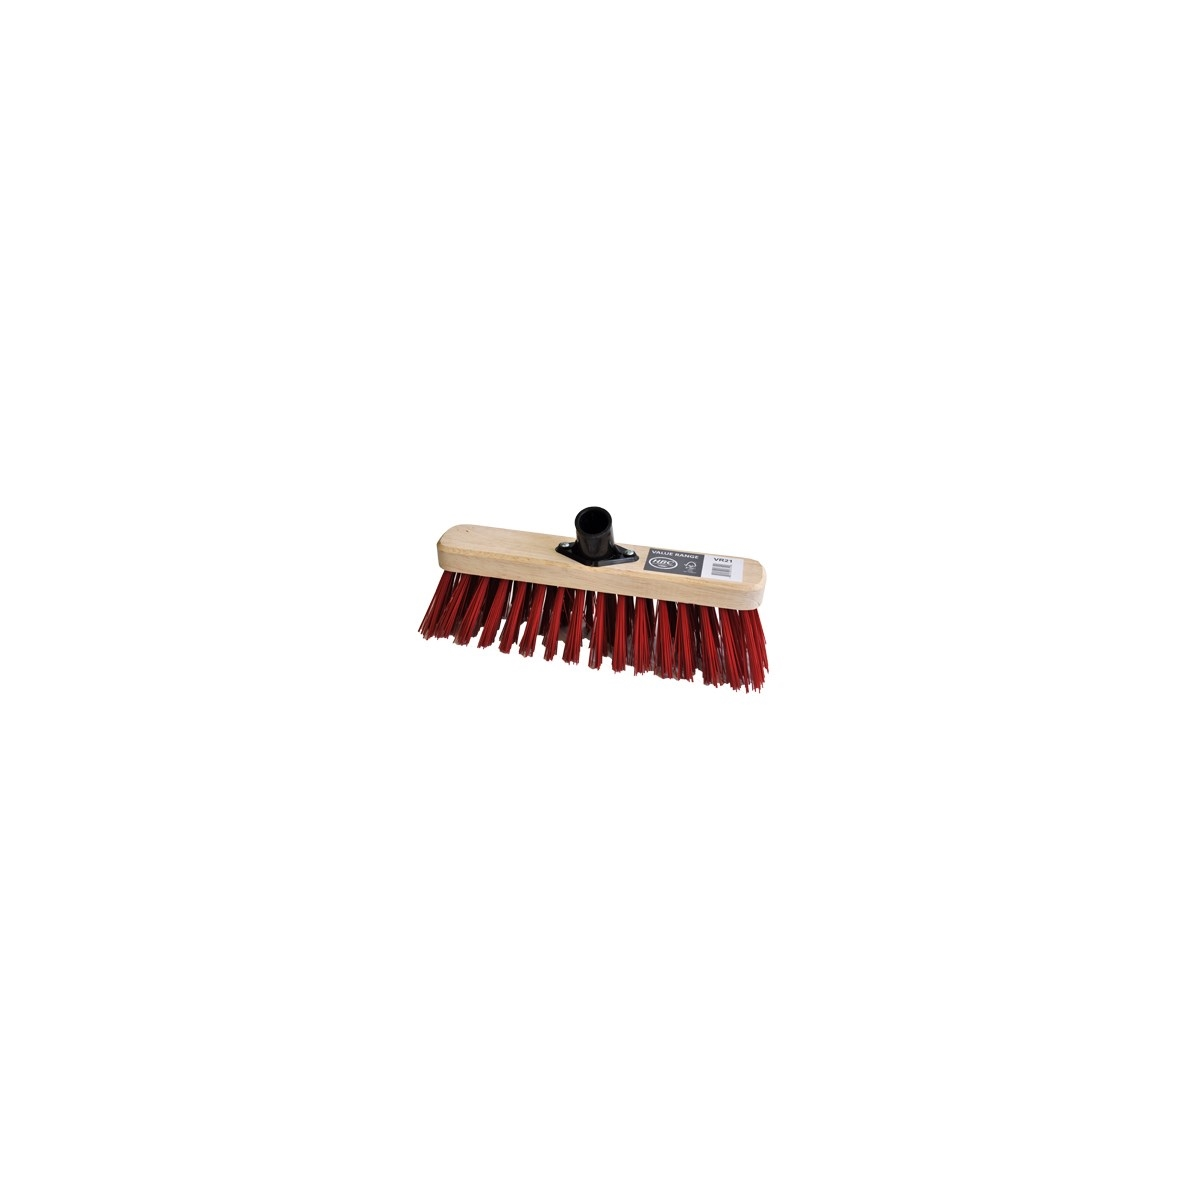 290MM SWEEPING BROOM RED PVC FILL C/W PLASTIC SOCKET FITTED - STIFF